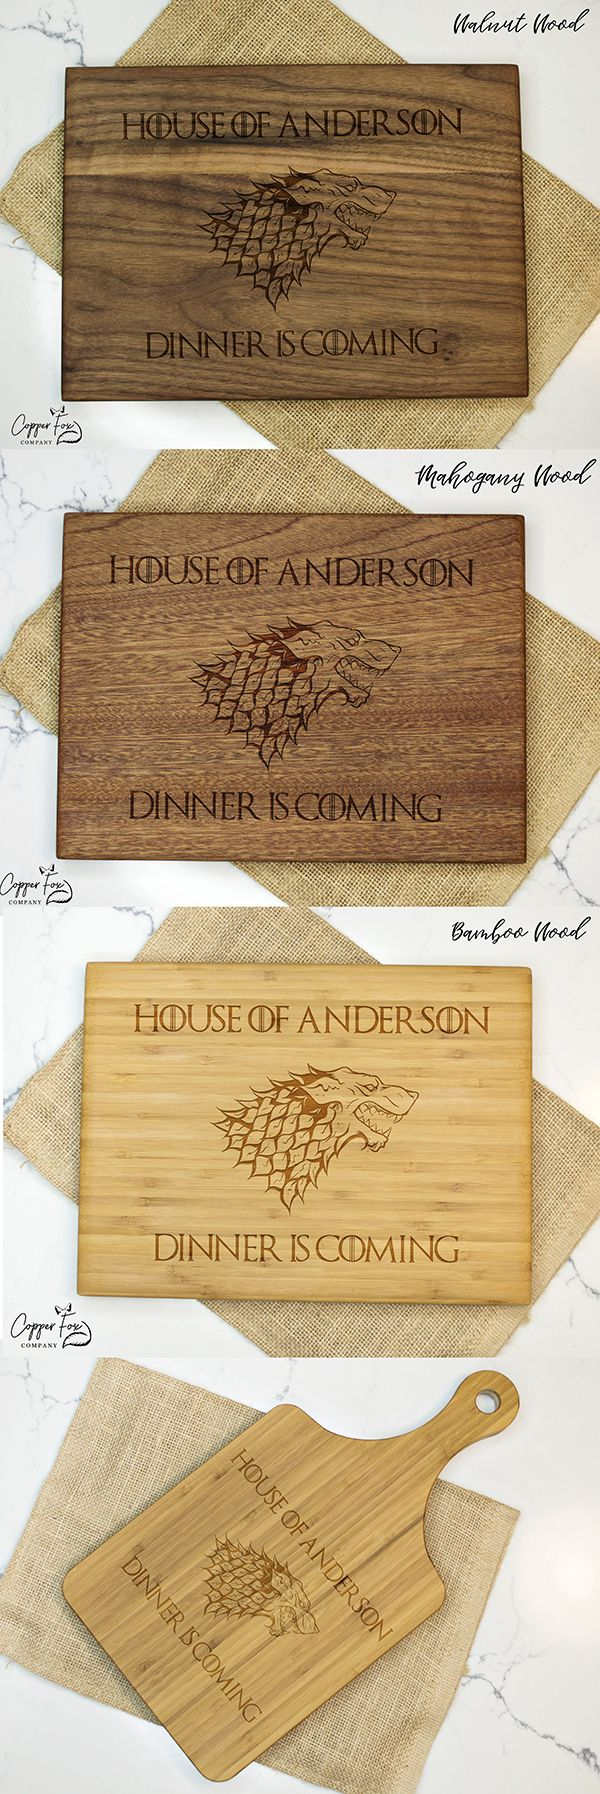 game of thrones gift, game of thrones wedding, game of thrones party, game of thrones dinner, game of thrones dinner is coming